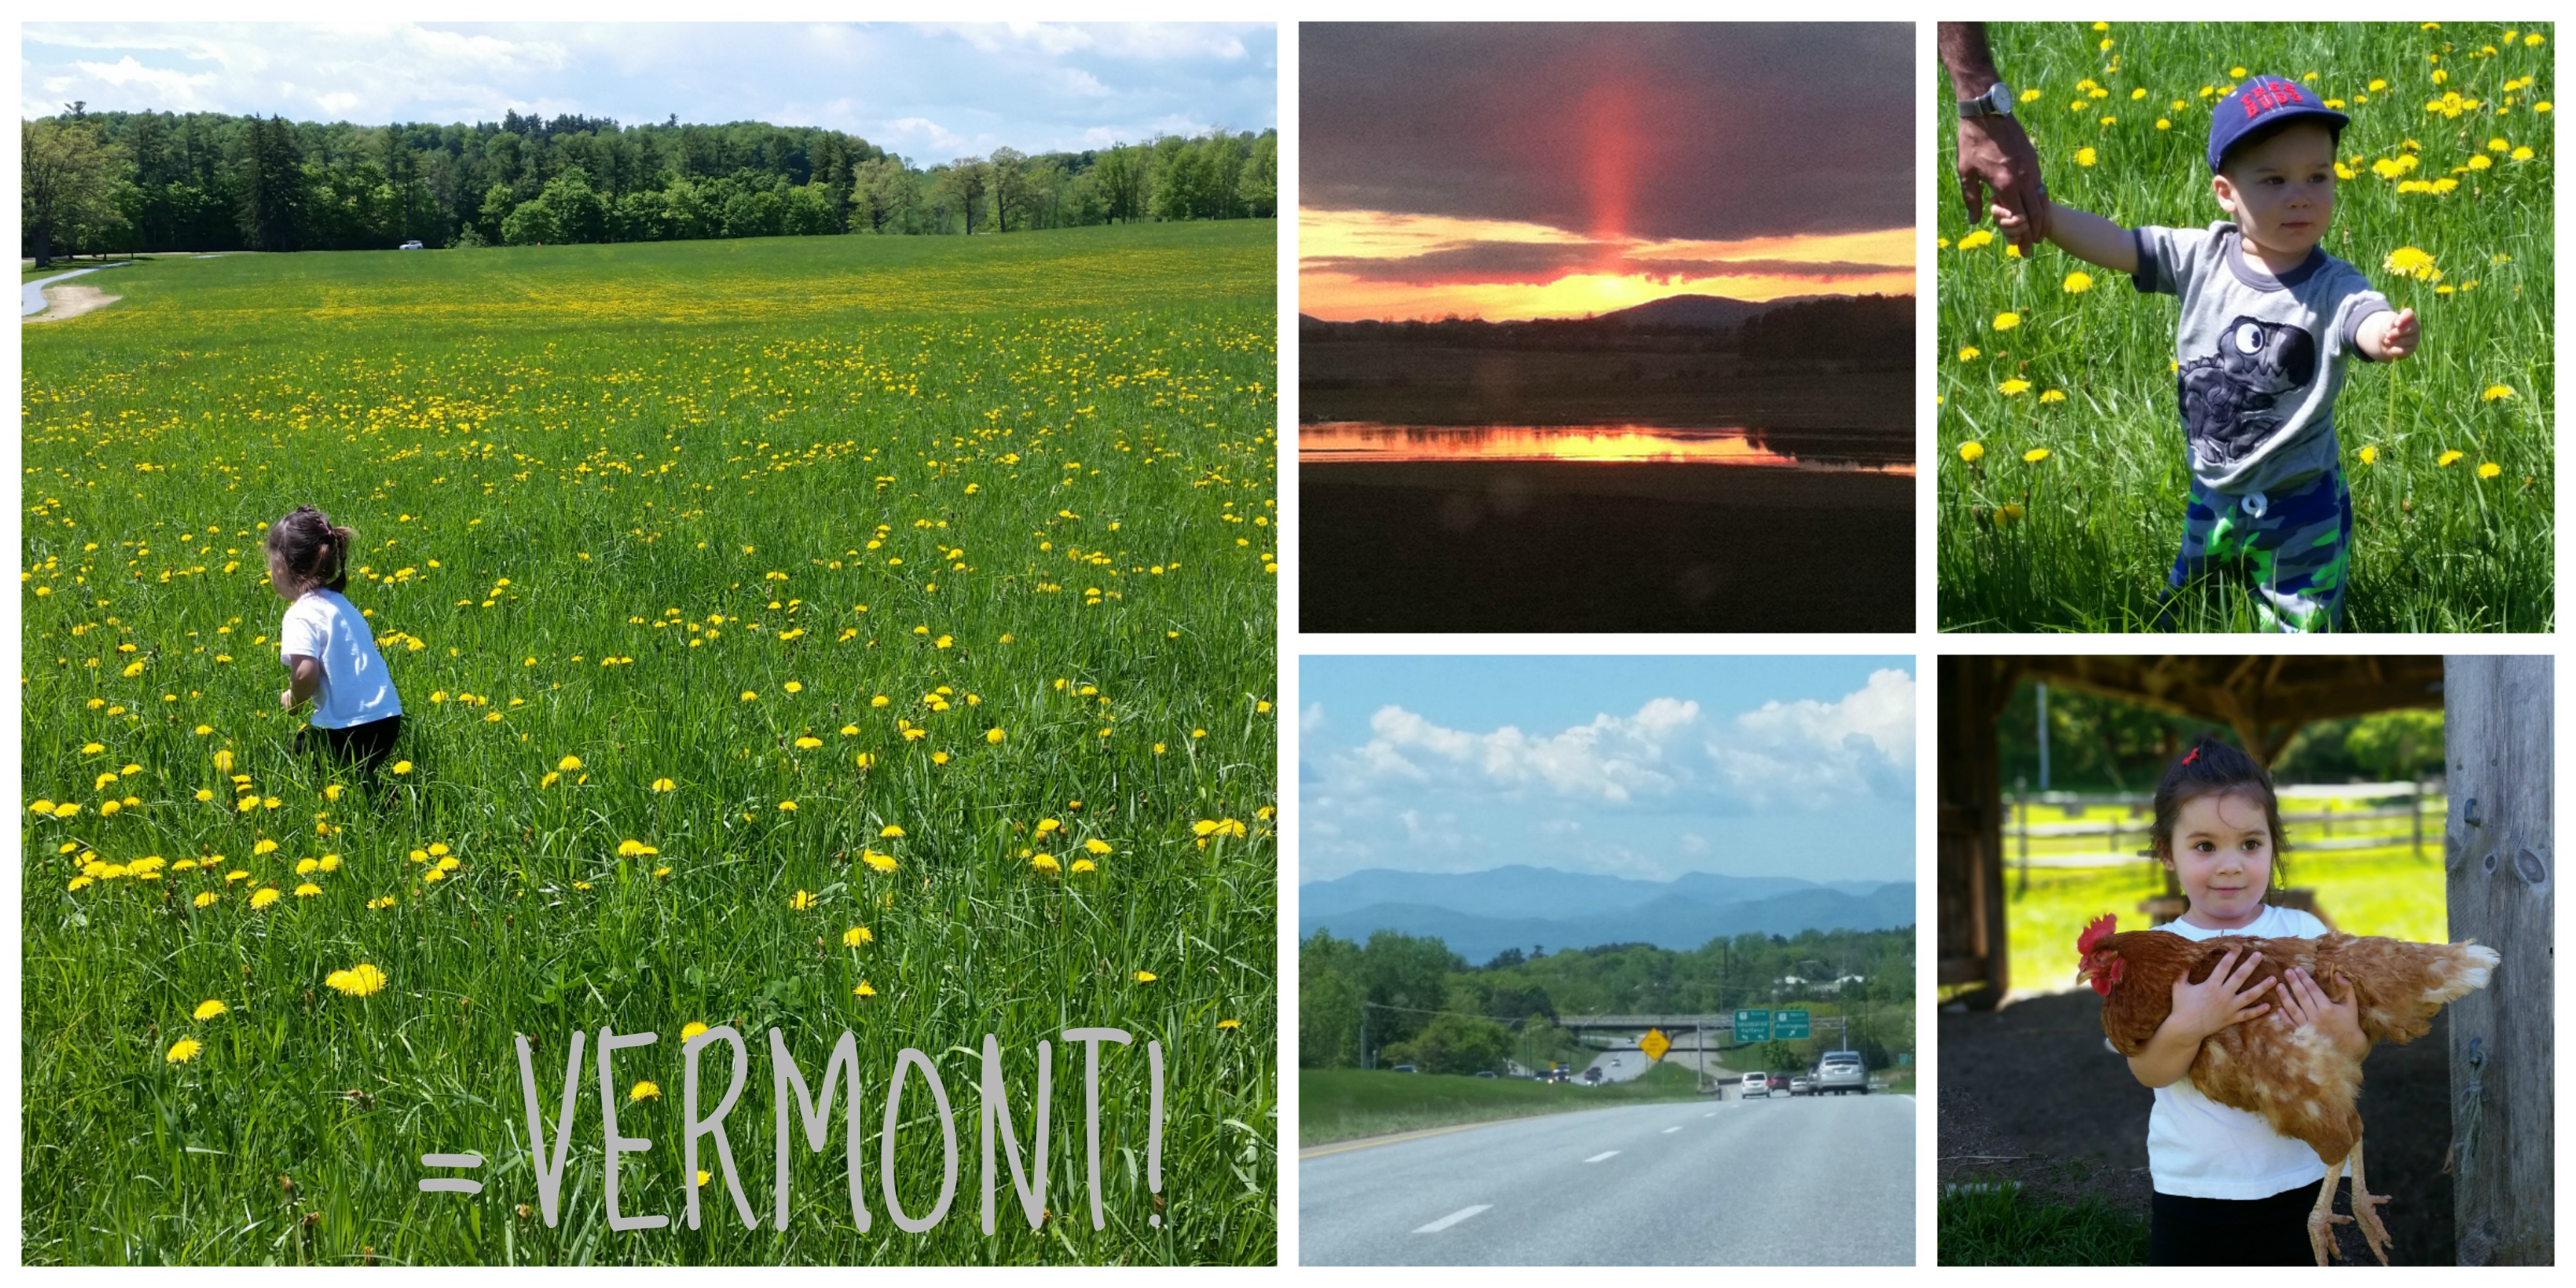 vermont blog collage big